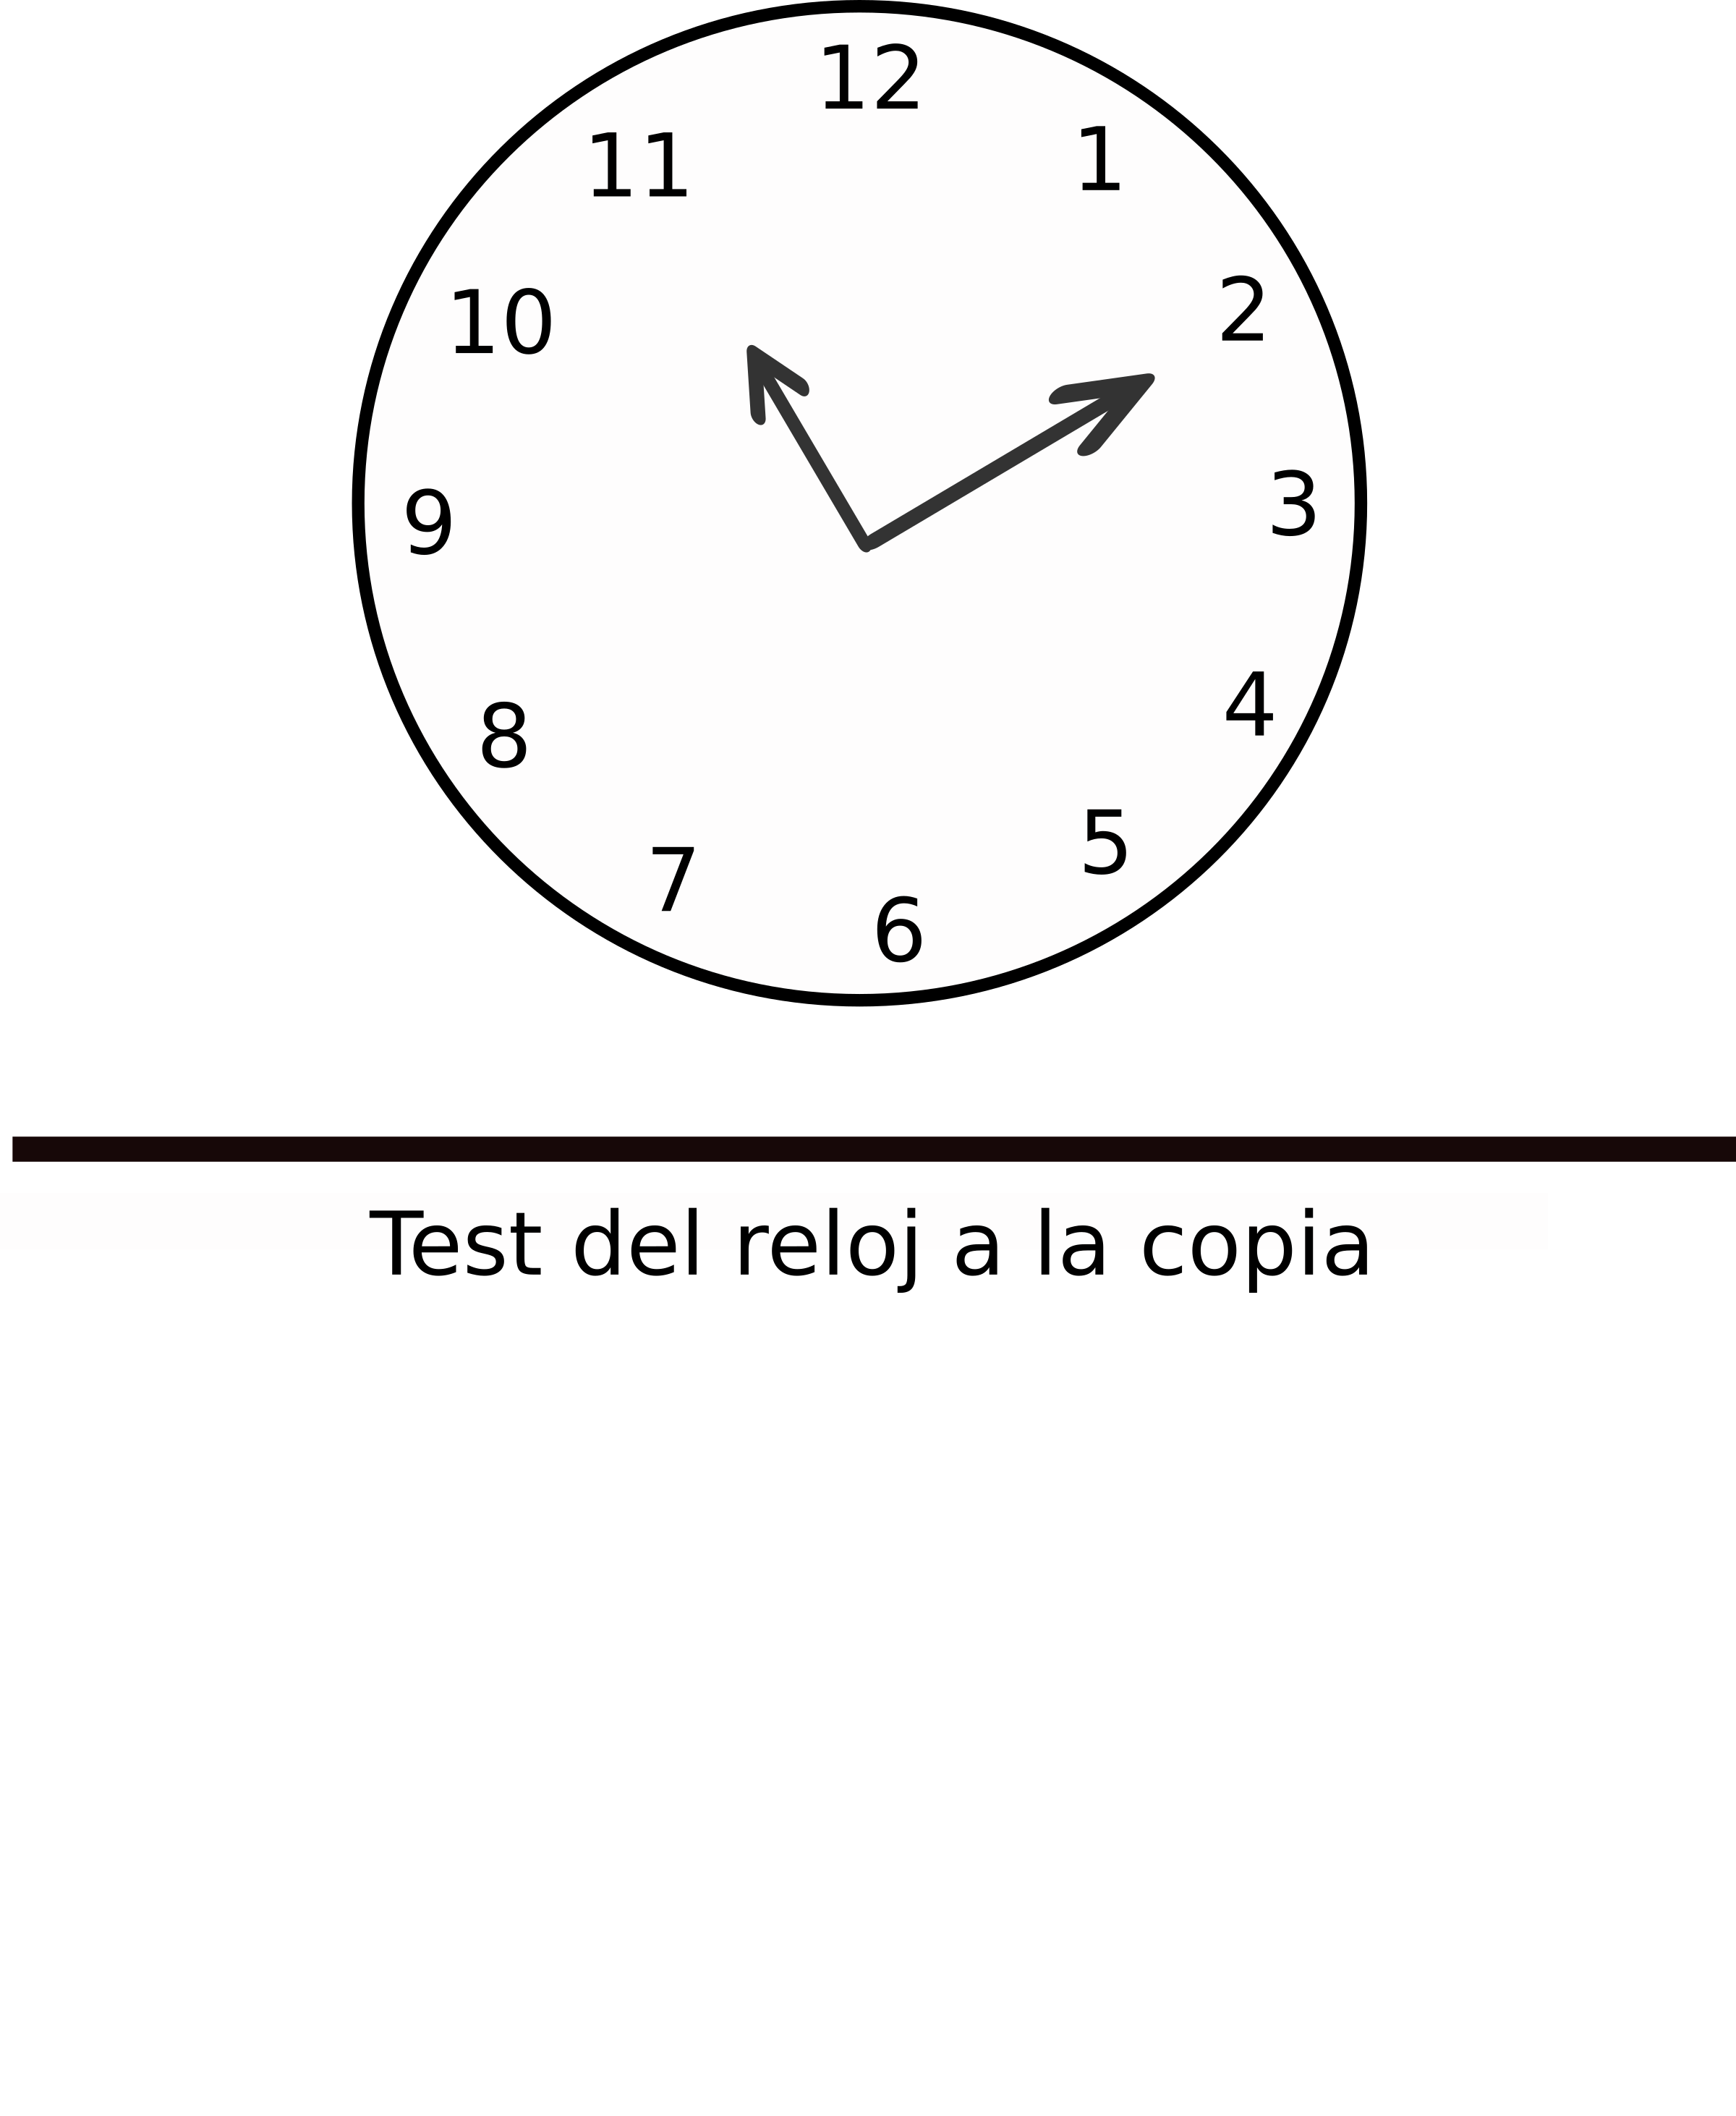 clipart test del reloj a la copia svg clip art flower bouquet svg clip art united states